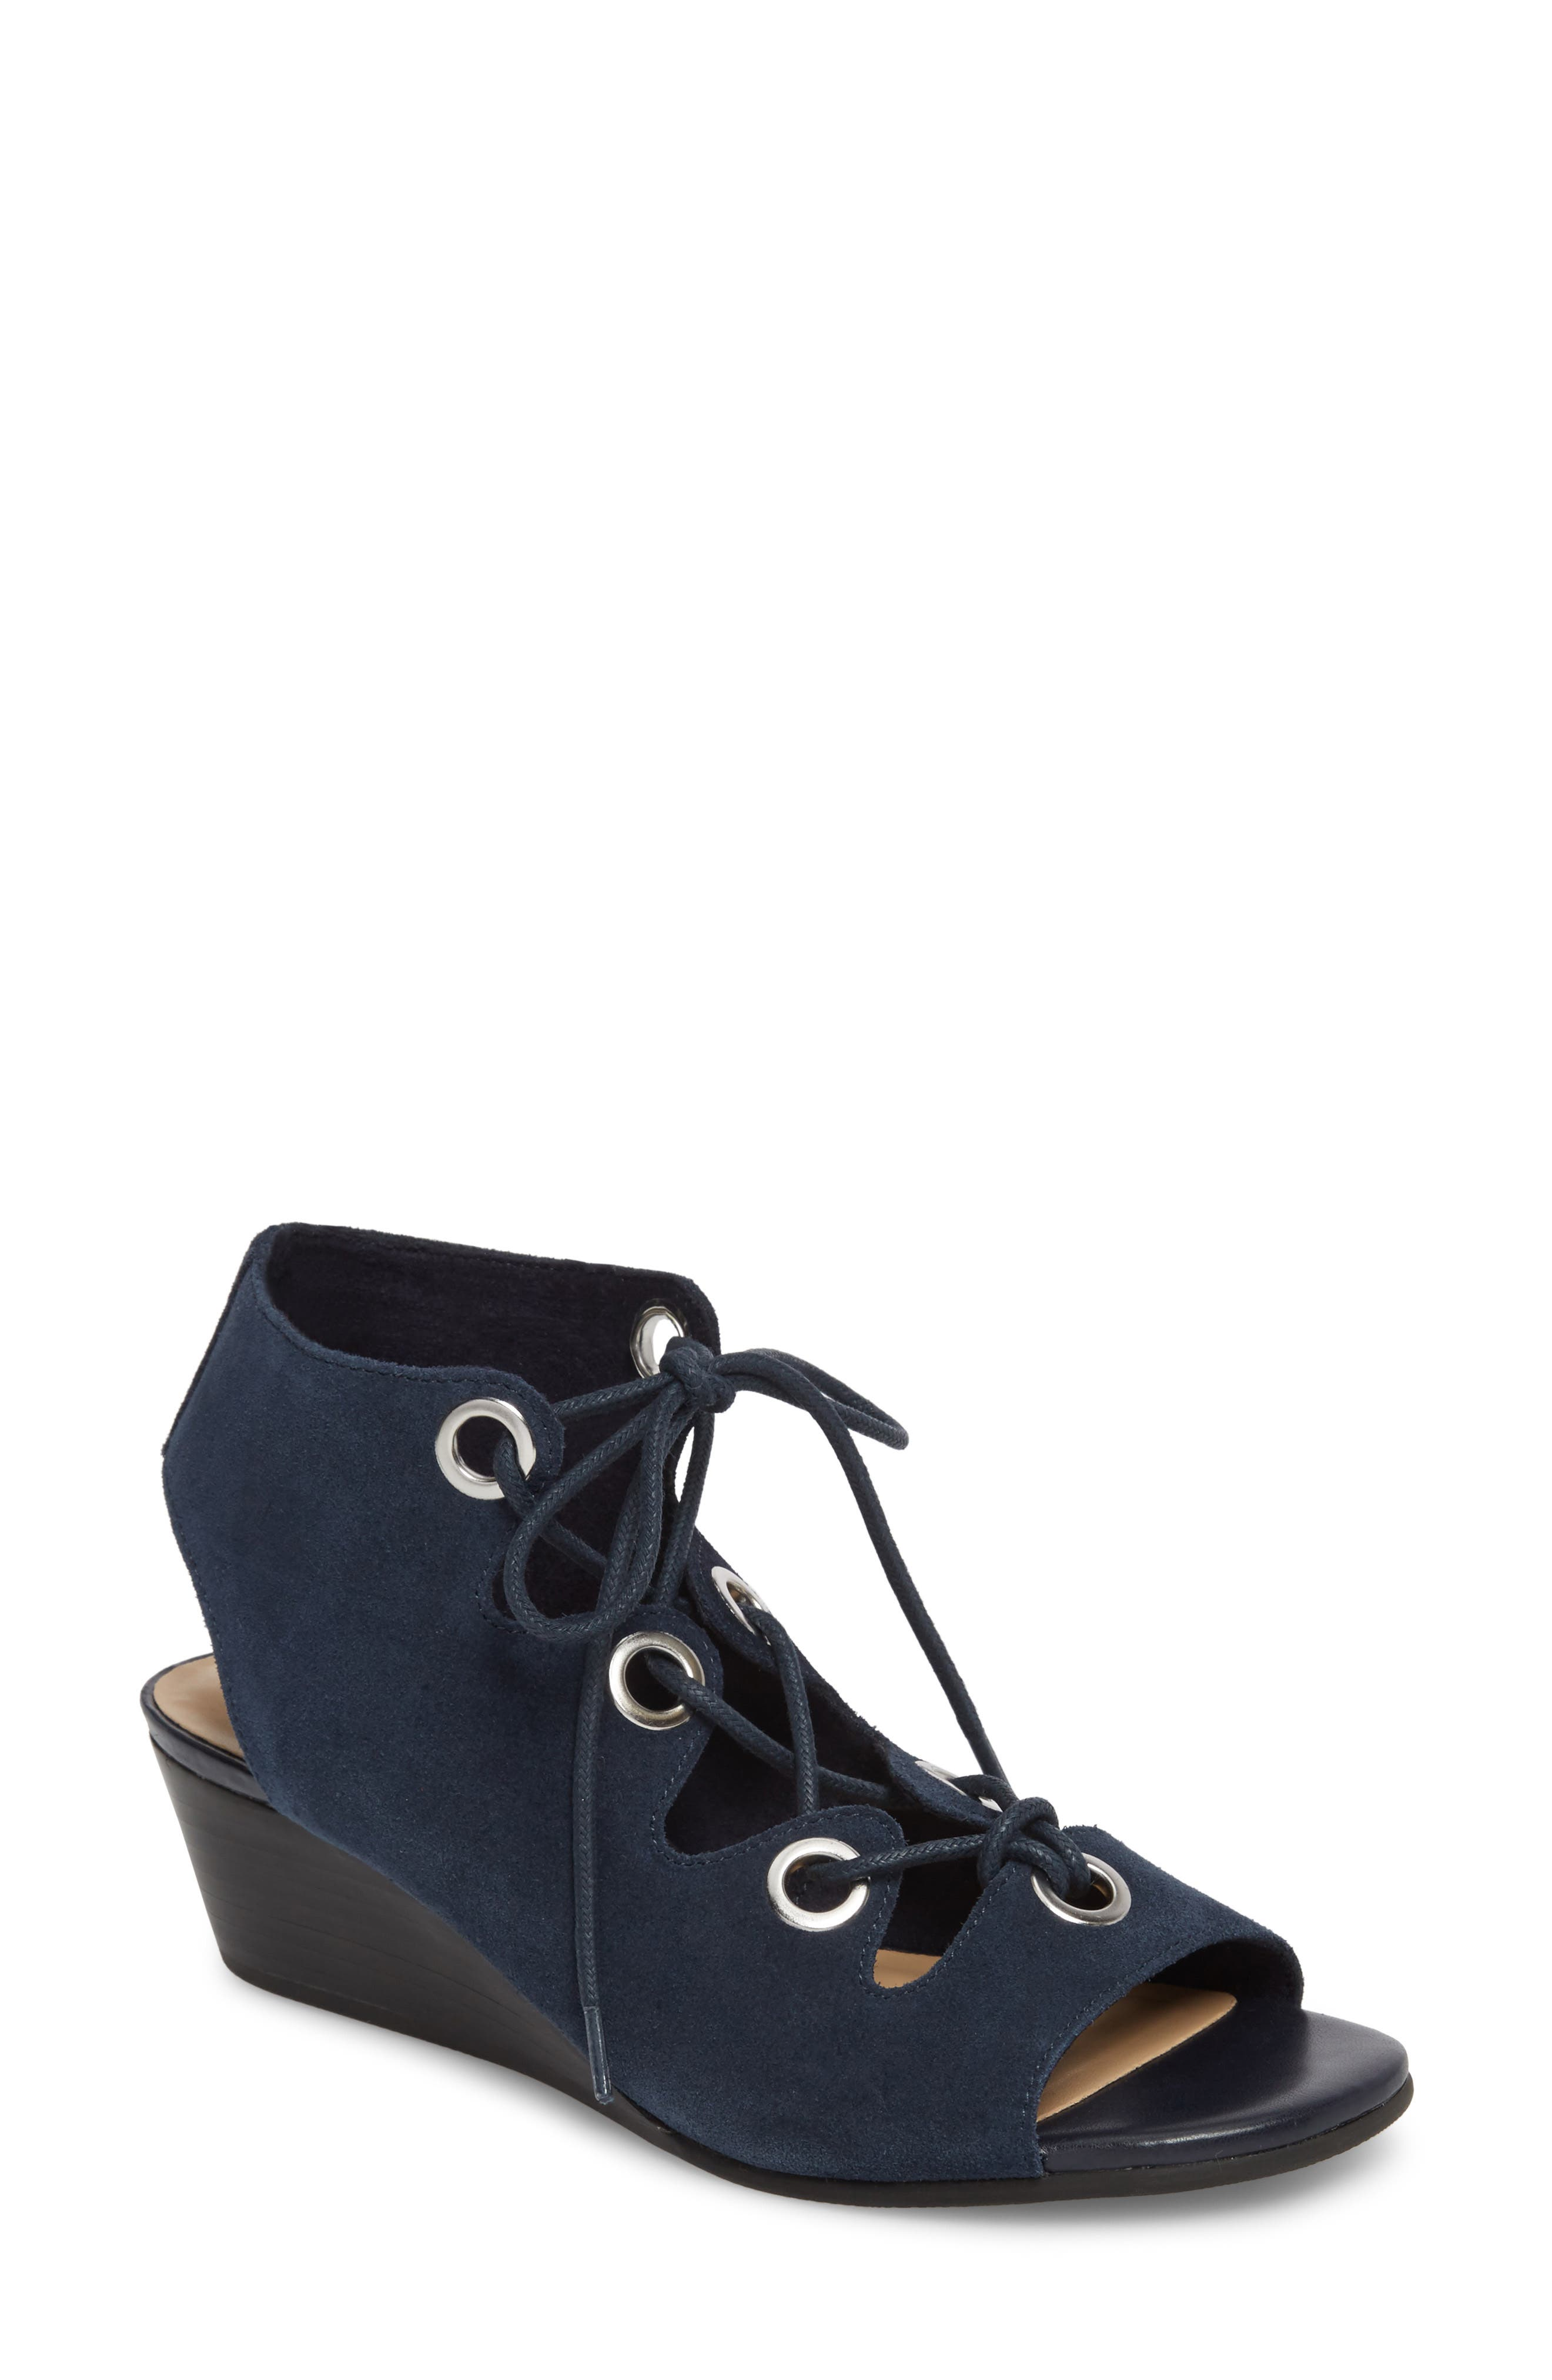 Ingrid Lace-Up Sandal,                         Main,                         color, Navy Suede